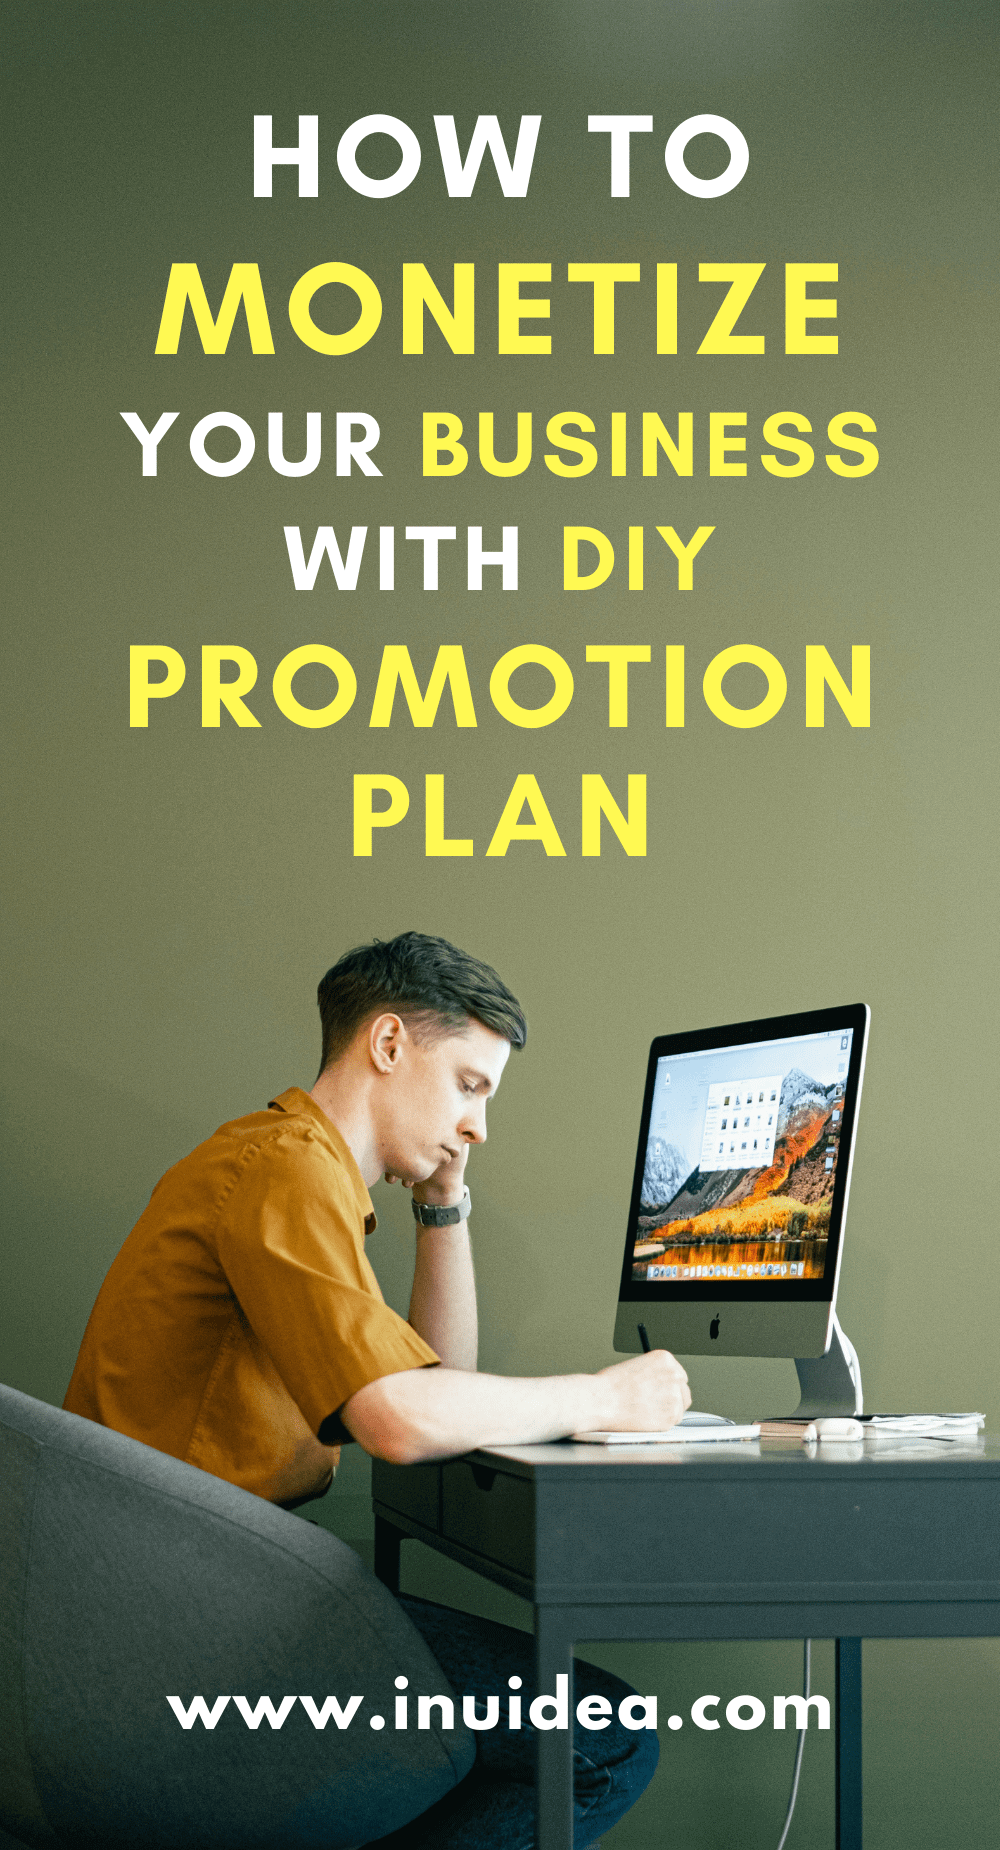 How to Monetize Your Business With Do It Yourself Promotion Plan